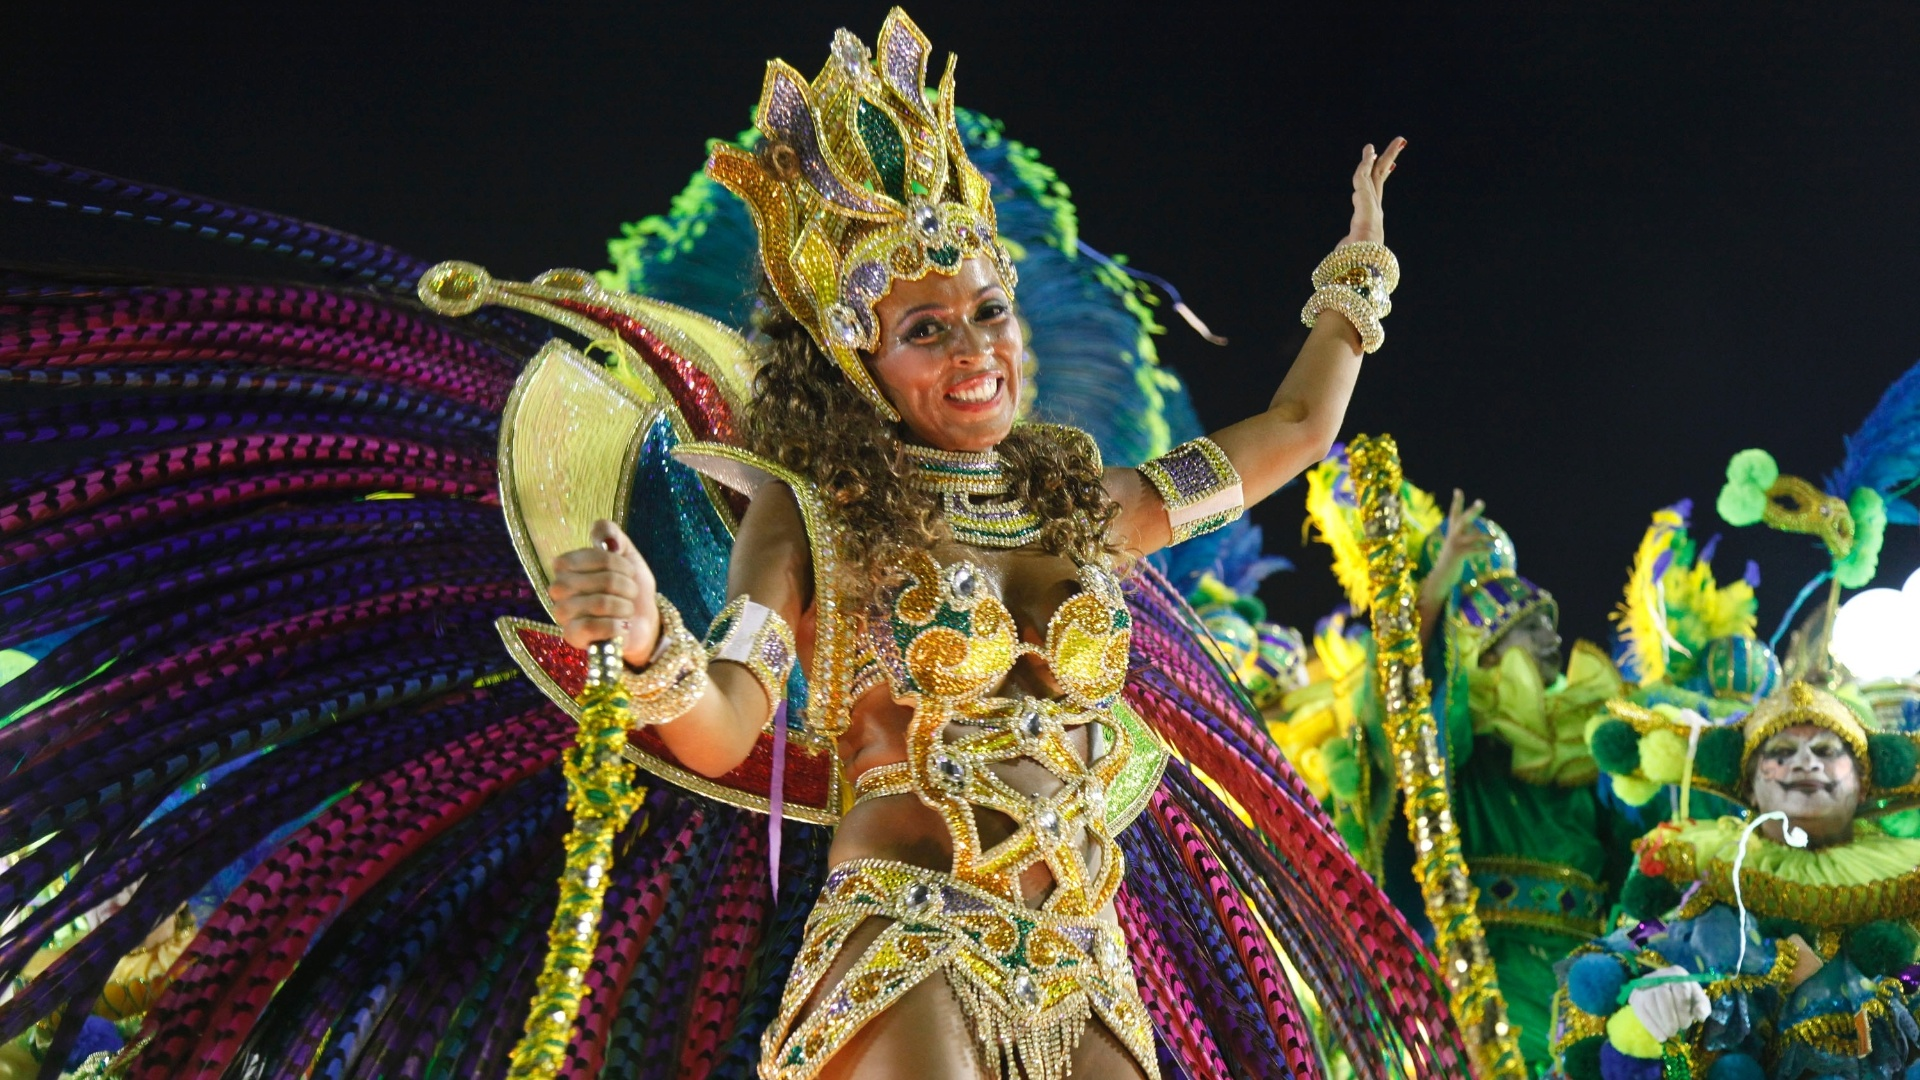 Destaque de carro alegrico samba em desfile da Imperatriz Leopoldinense na Marqus de Sapuca, no Rio (19/2/12)